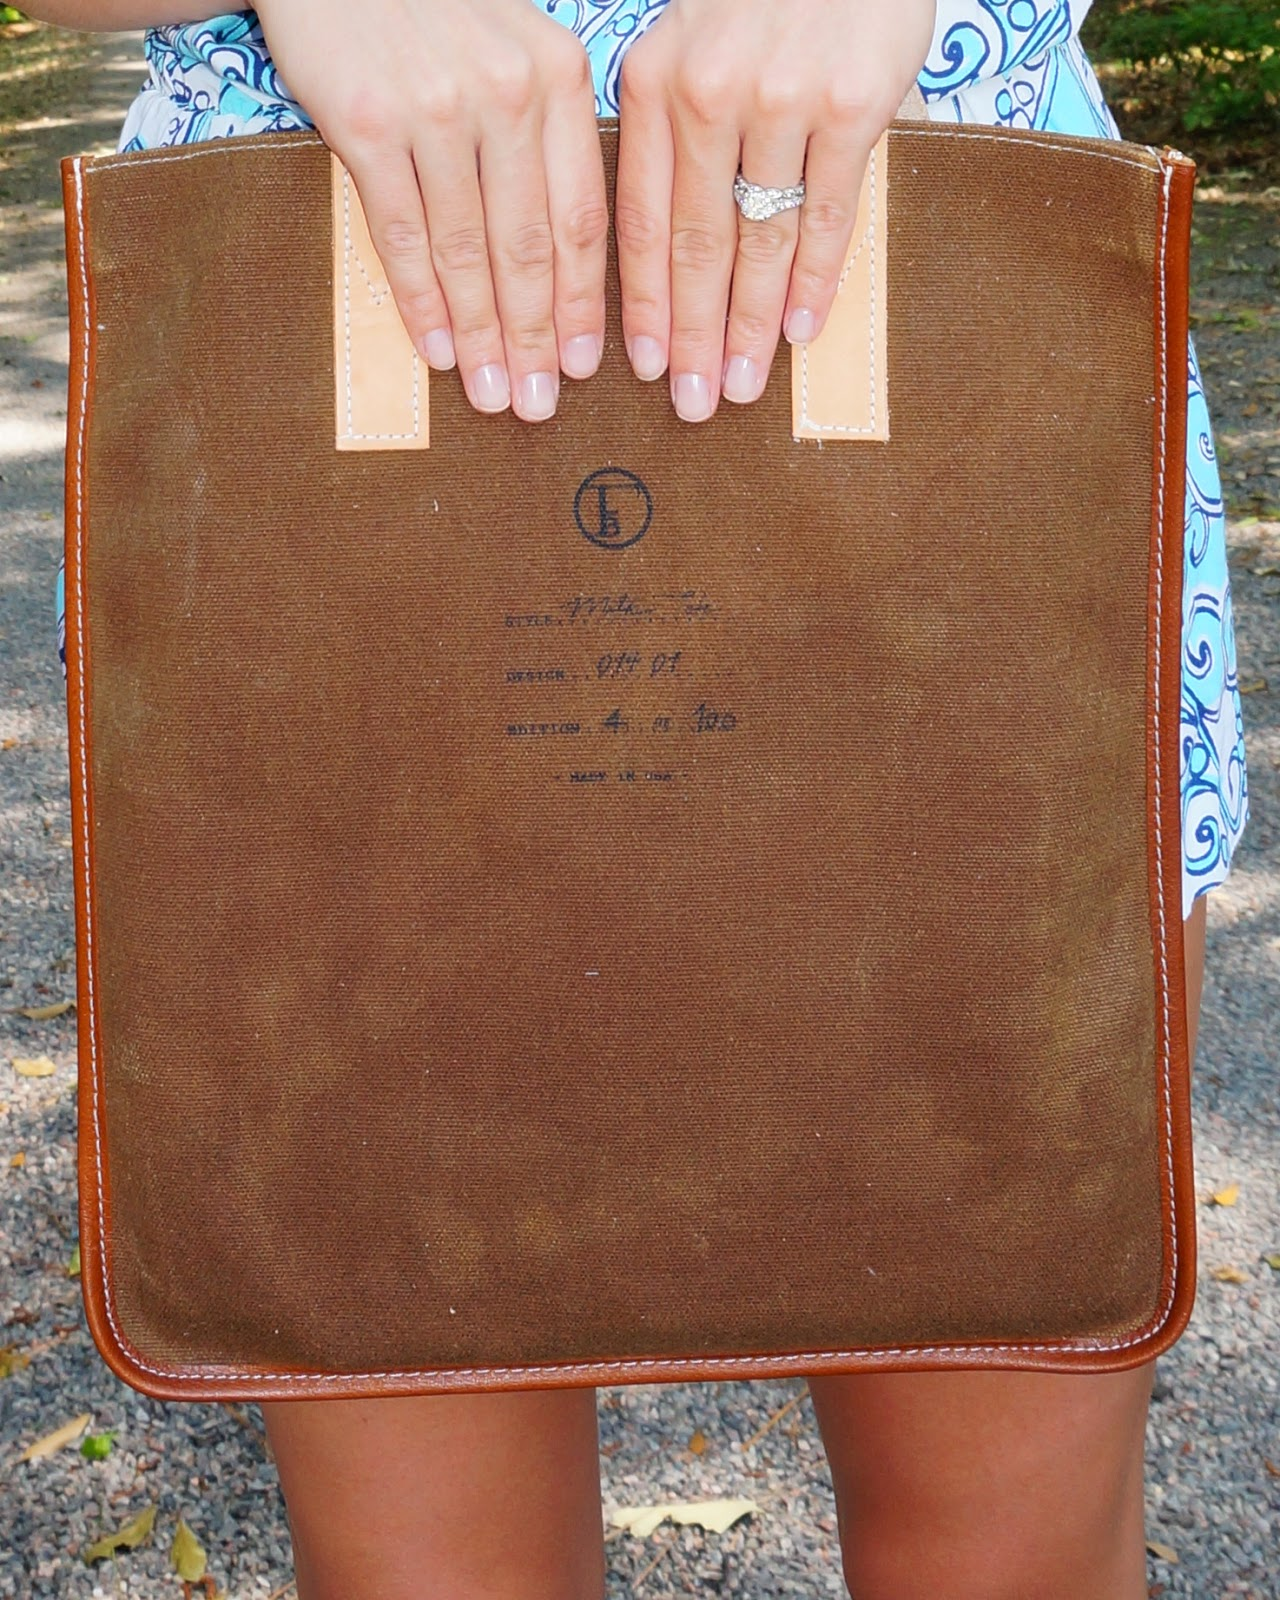 Flea bag woodland Milk tote